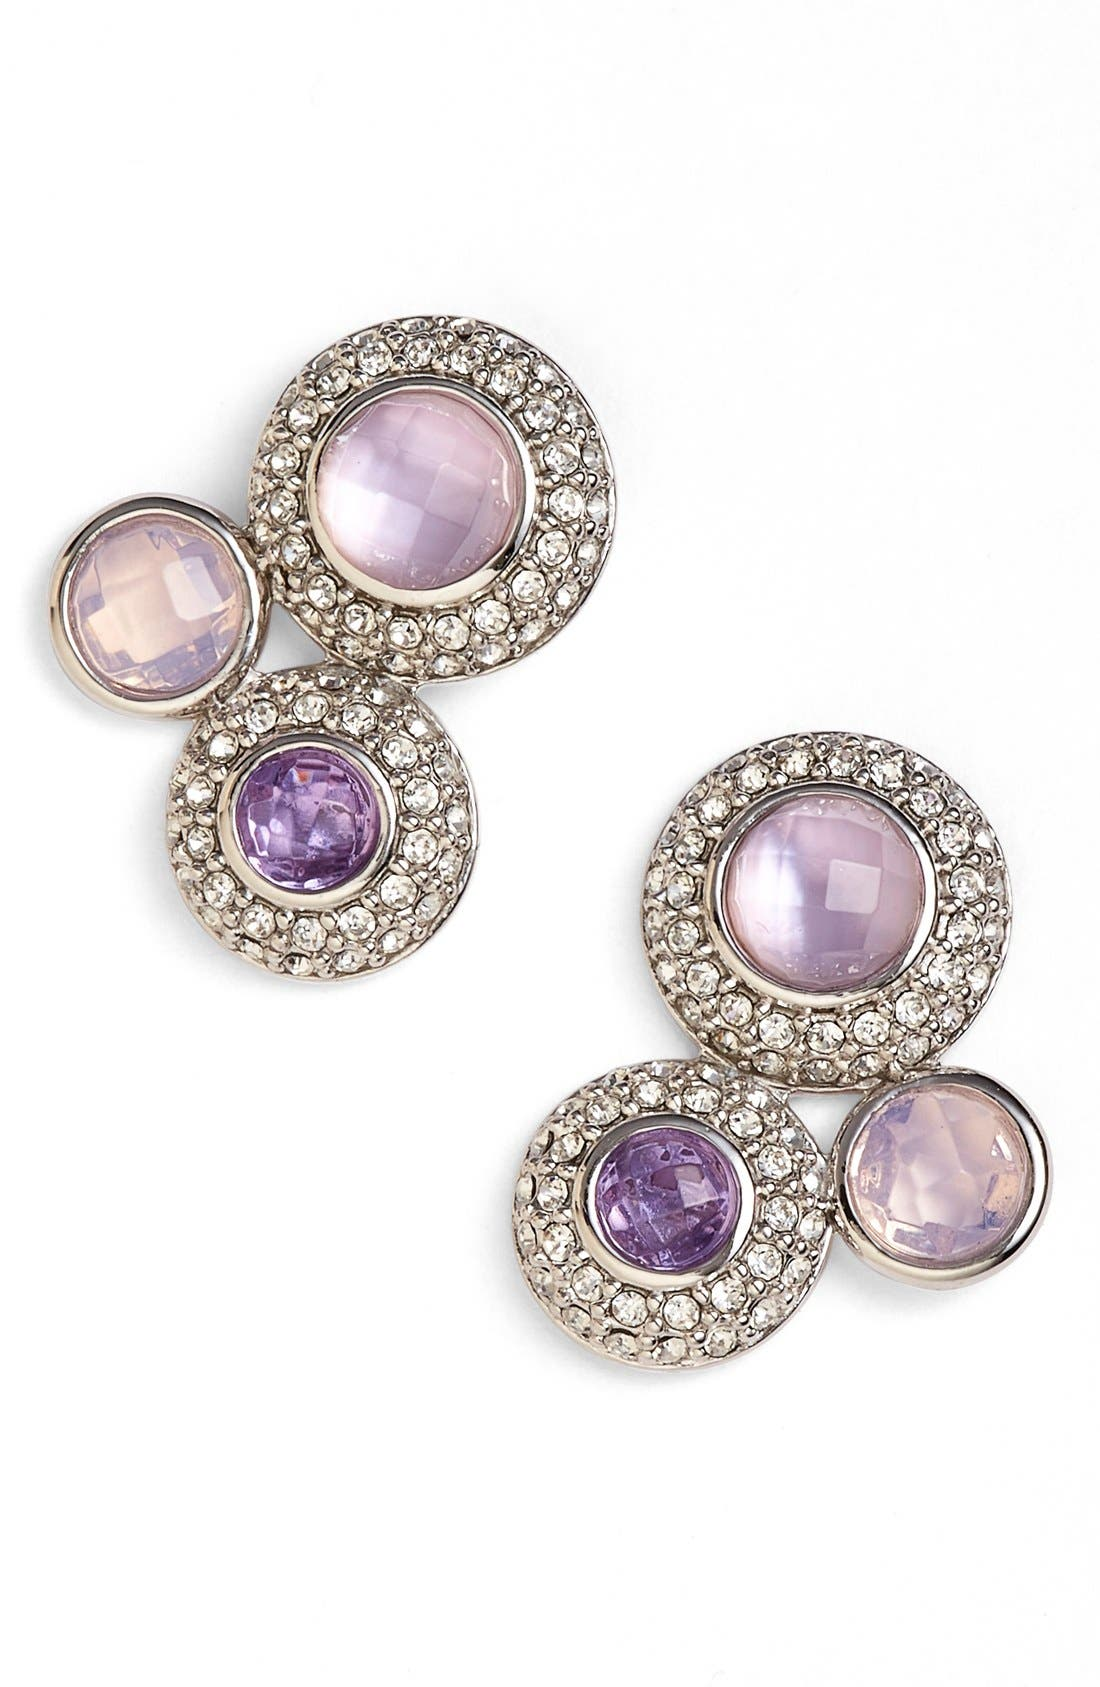 Alternate Image 1 Selected - Judith Jack Jeweled Cluster Stud Earrings